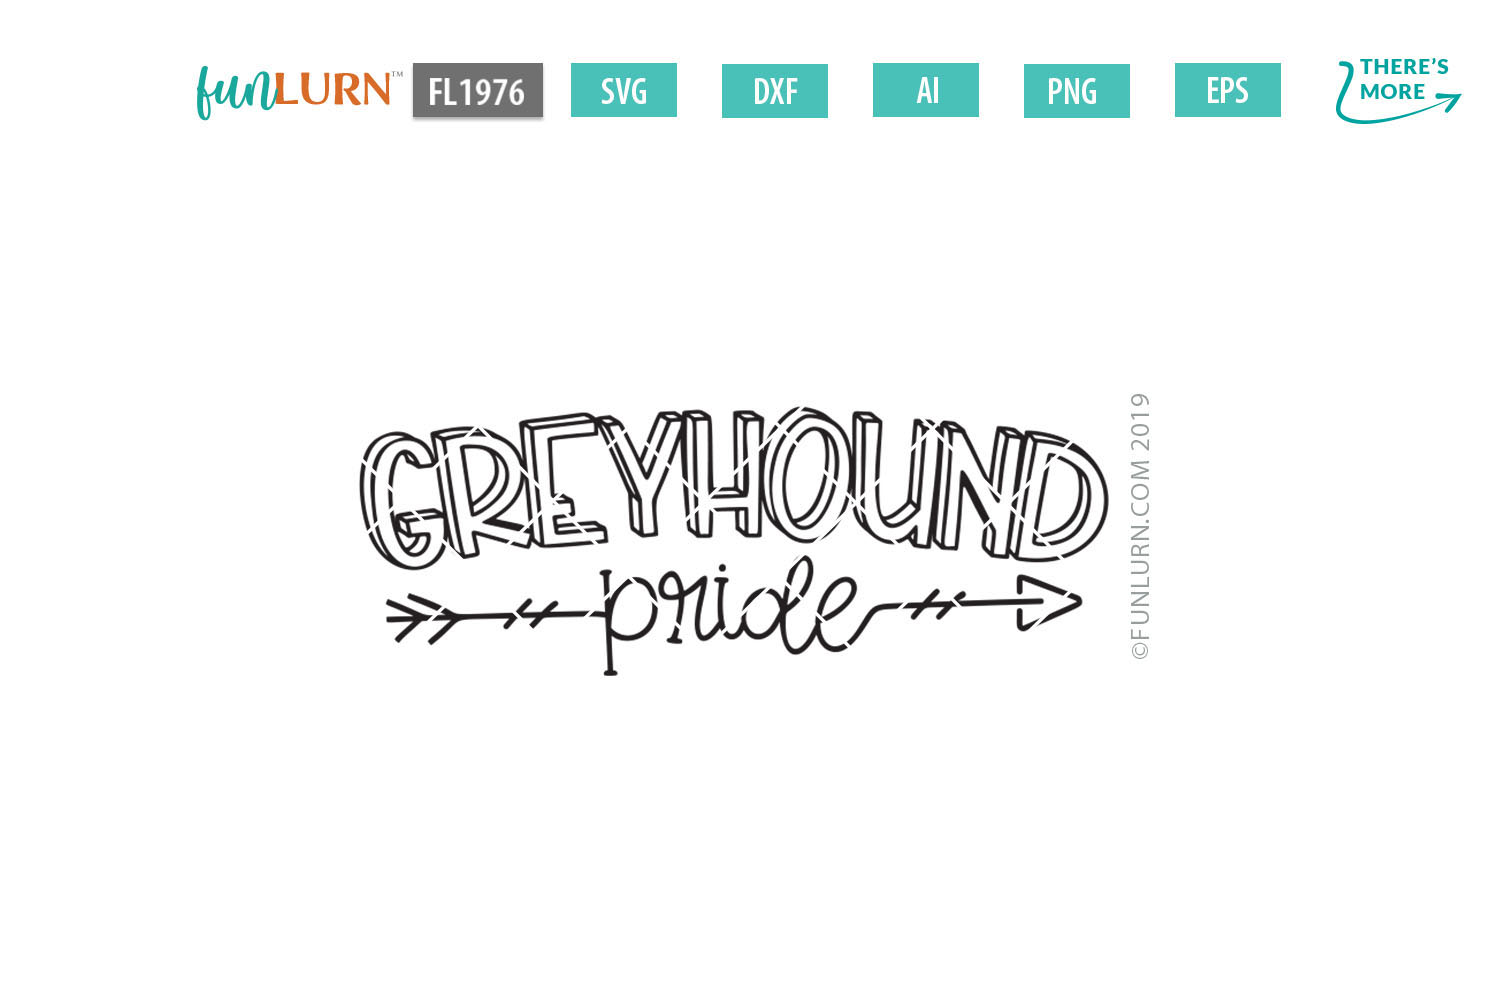 Greyhound Pride Team SVG Cut File example image 2